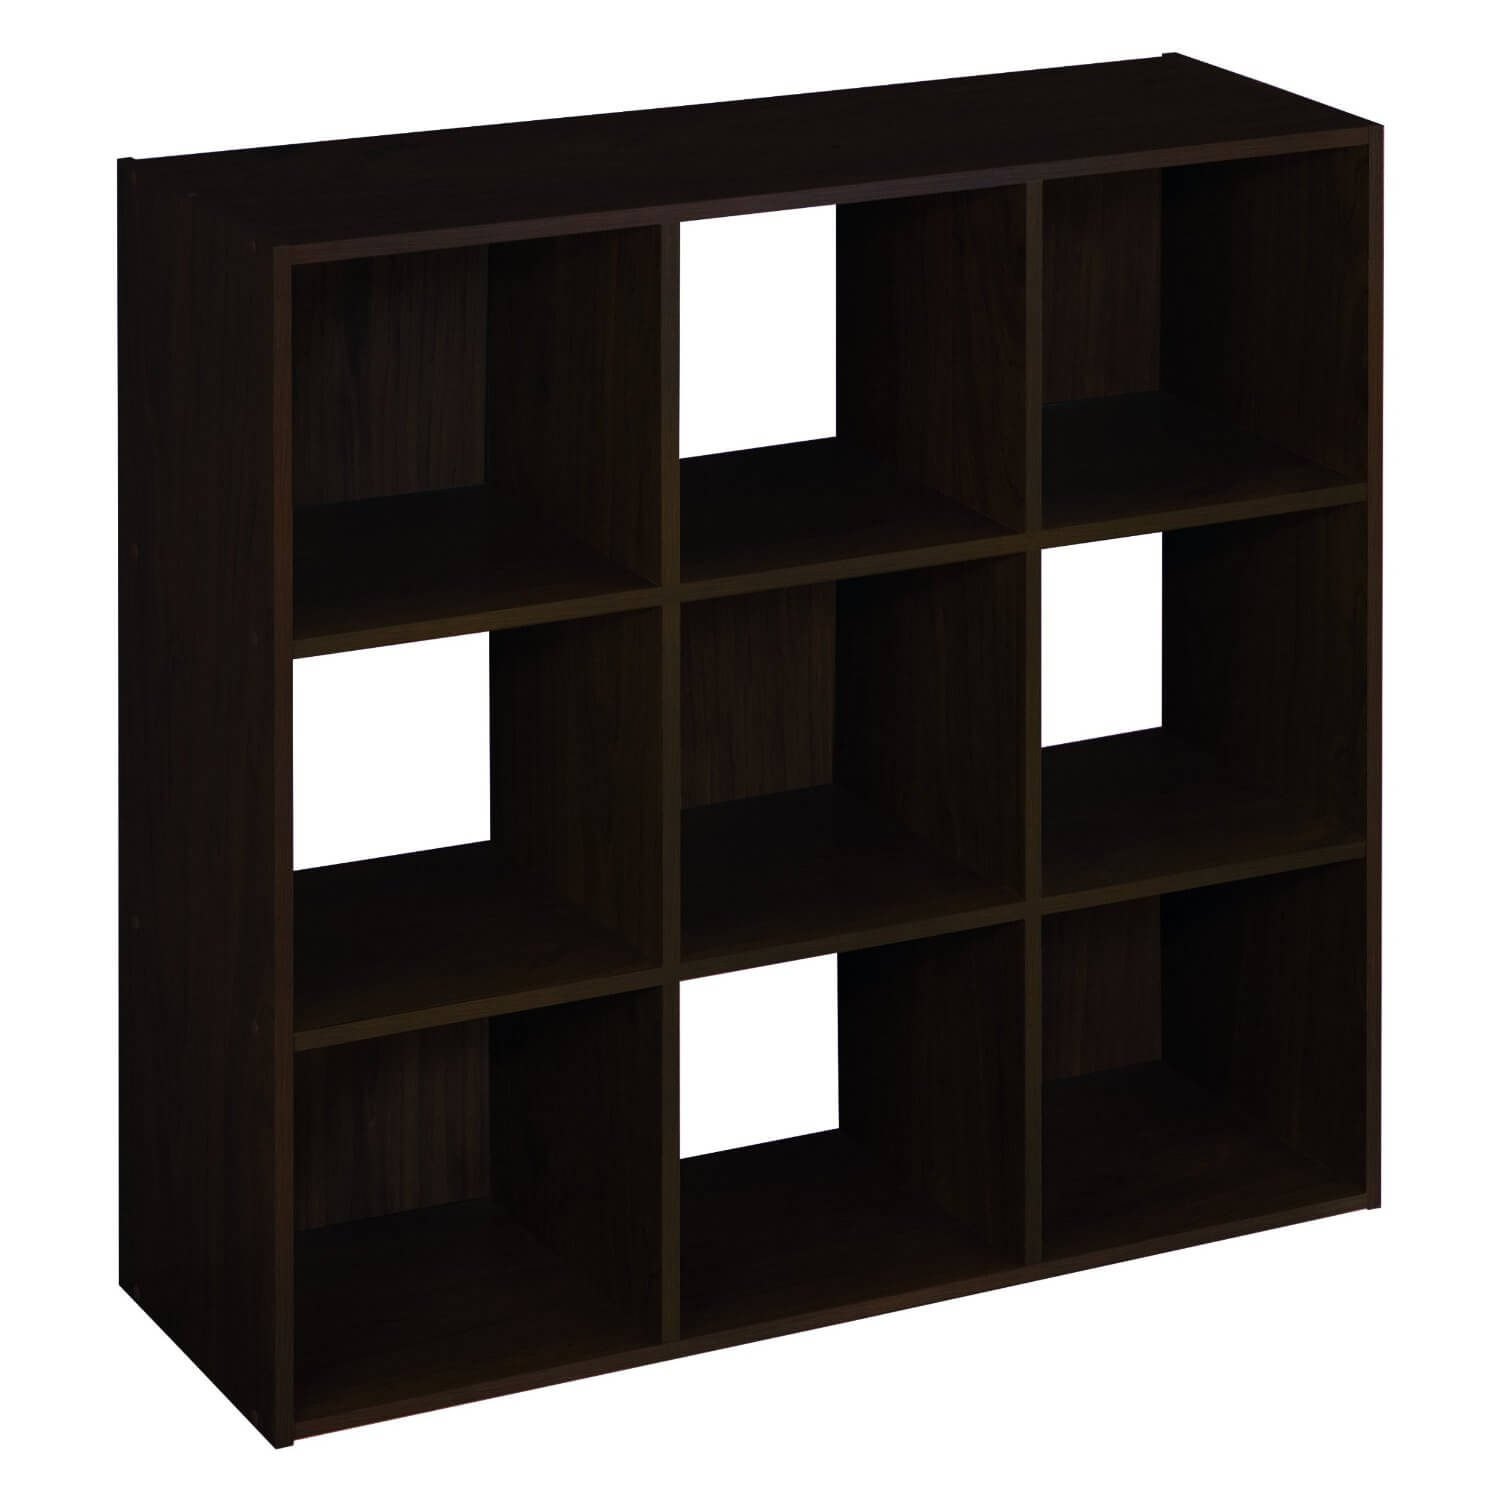 Heres Another Simple 9 Cube Shelf With Checkered Pattern Achieved Alternating Which Sections Have